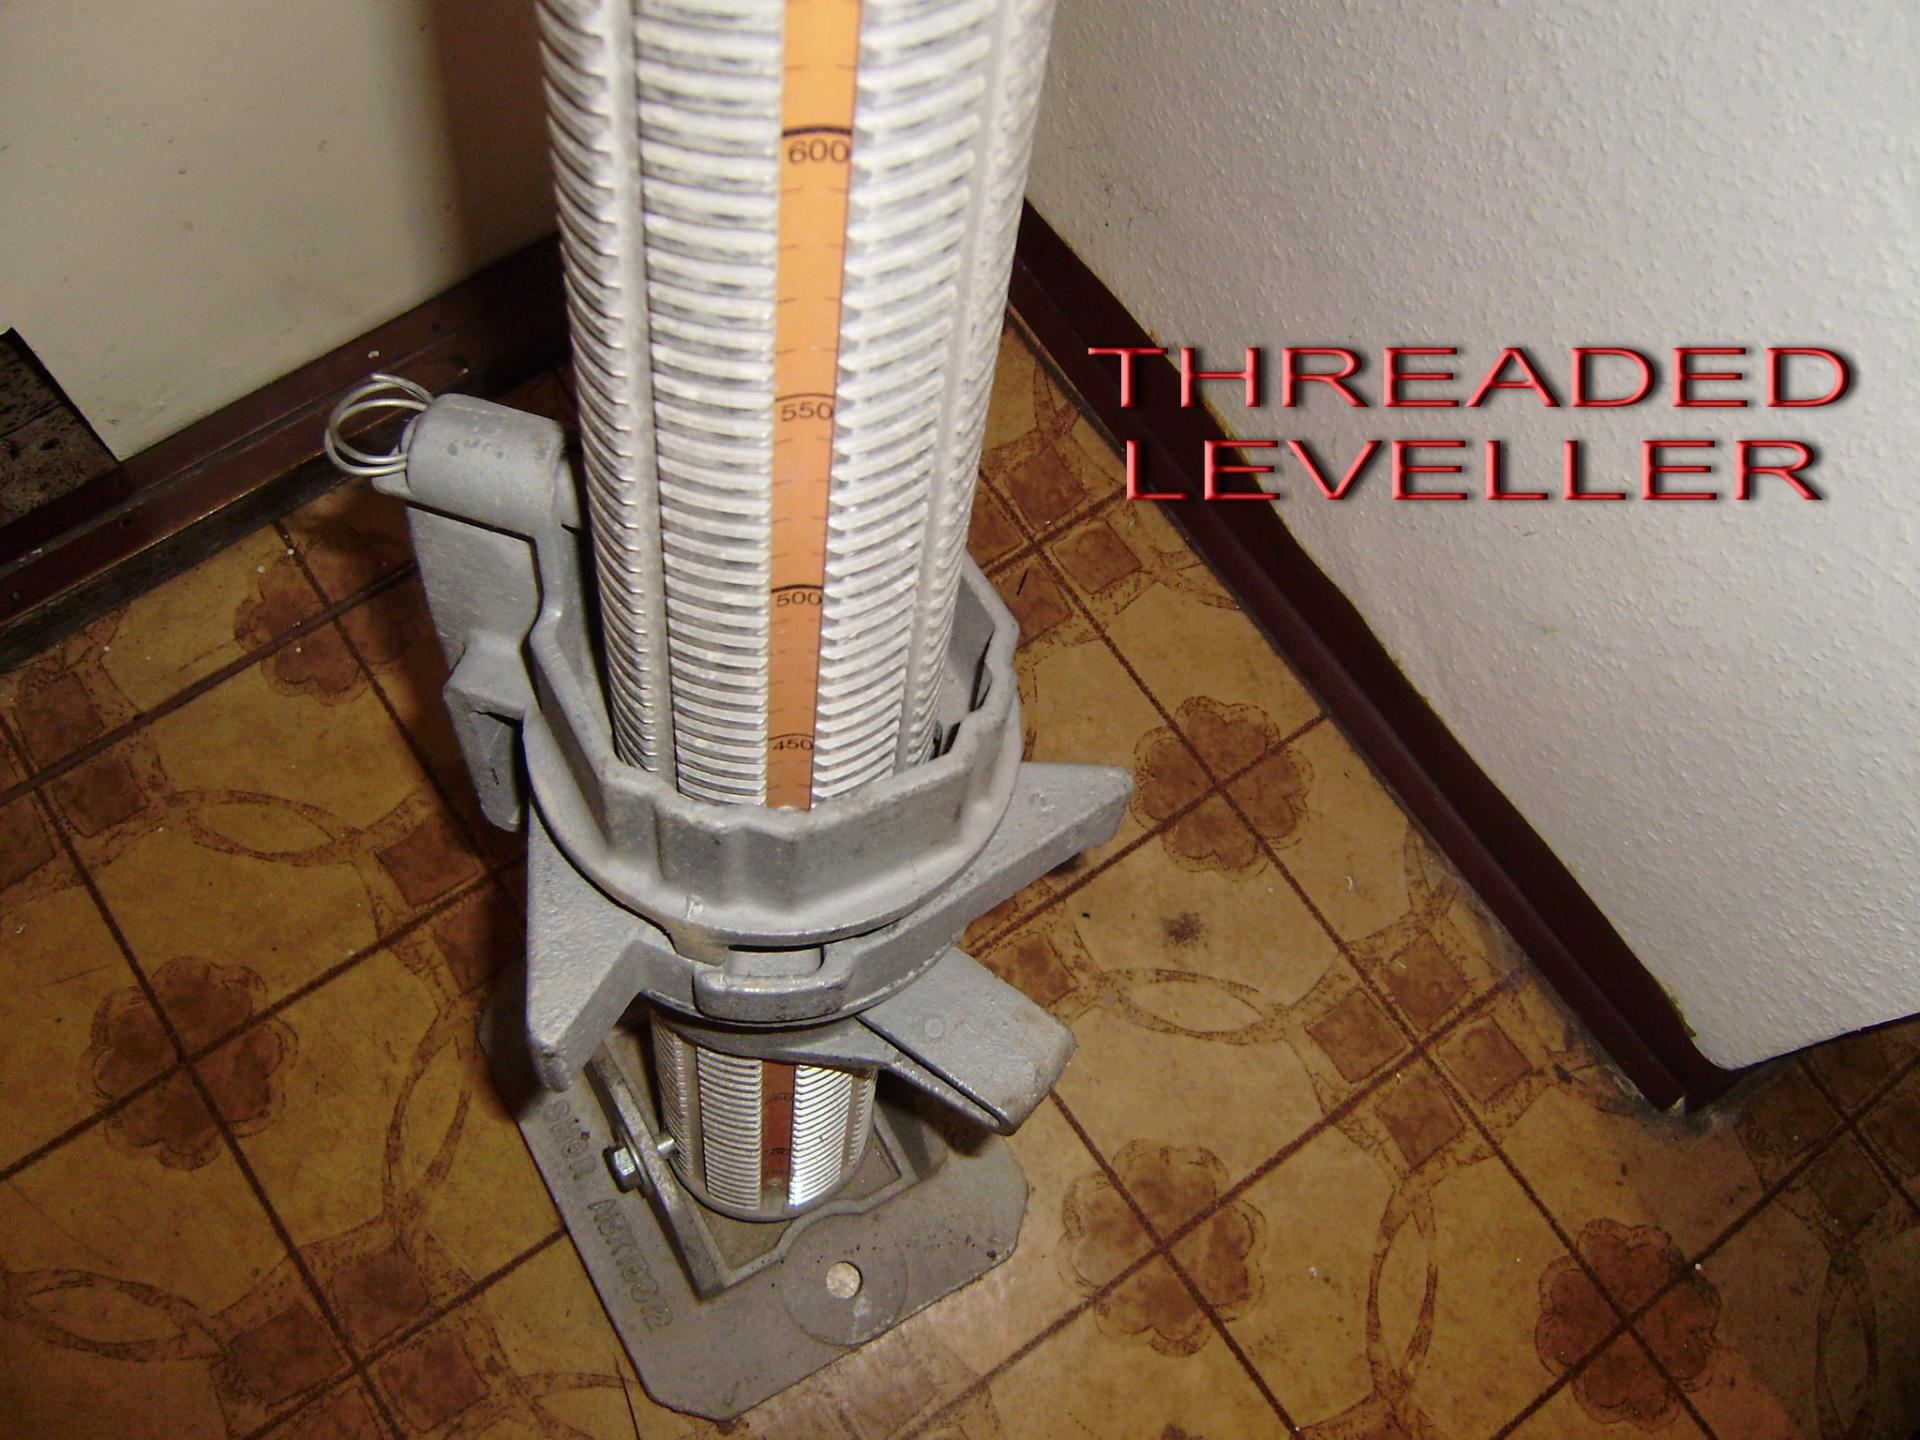 Threaded leveller